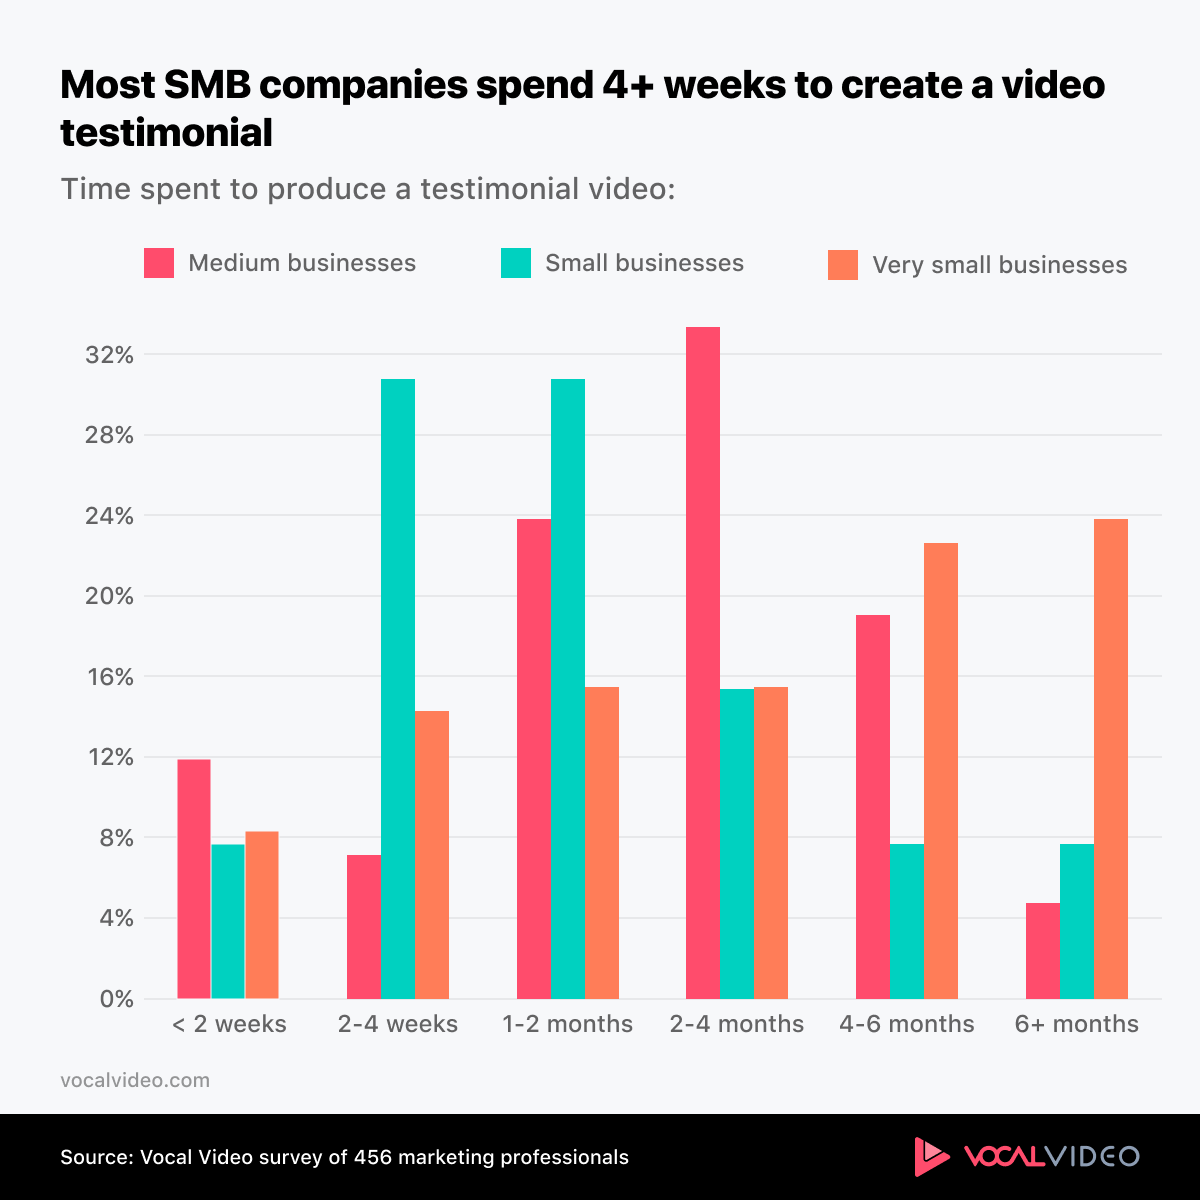 Chart showing that most SMB companies spend 4+ weeks producing testimonial video.